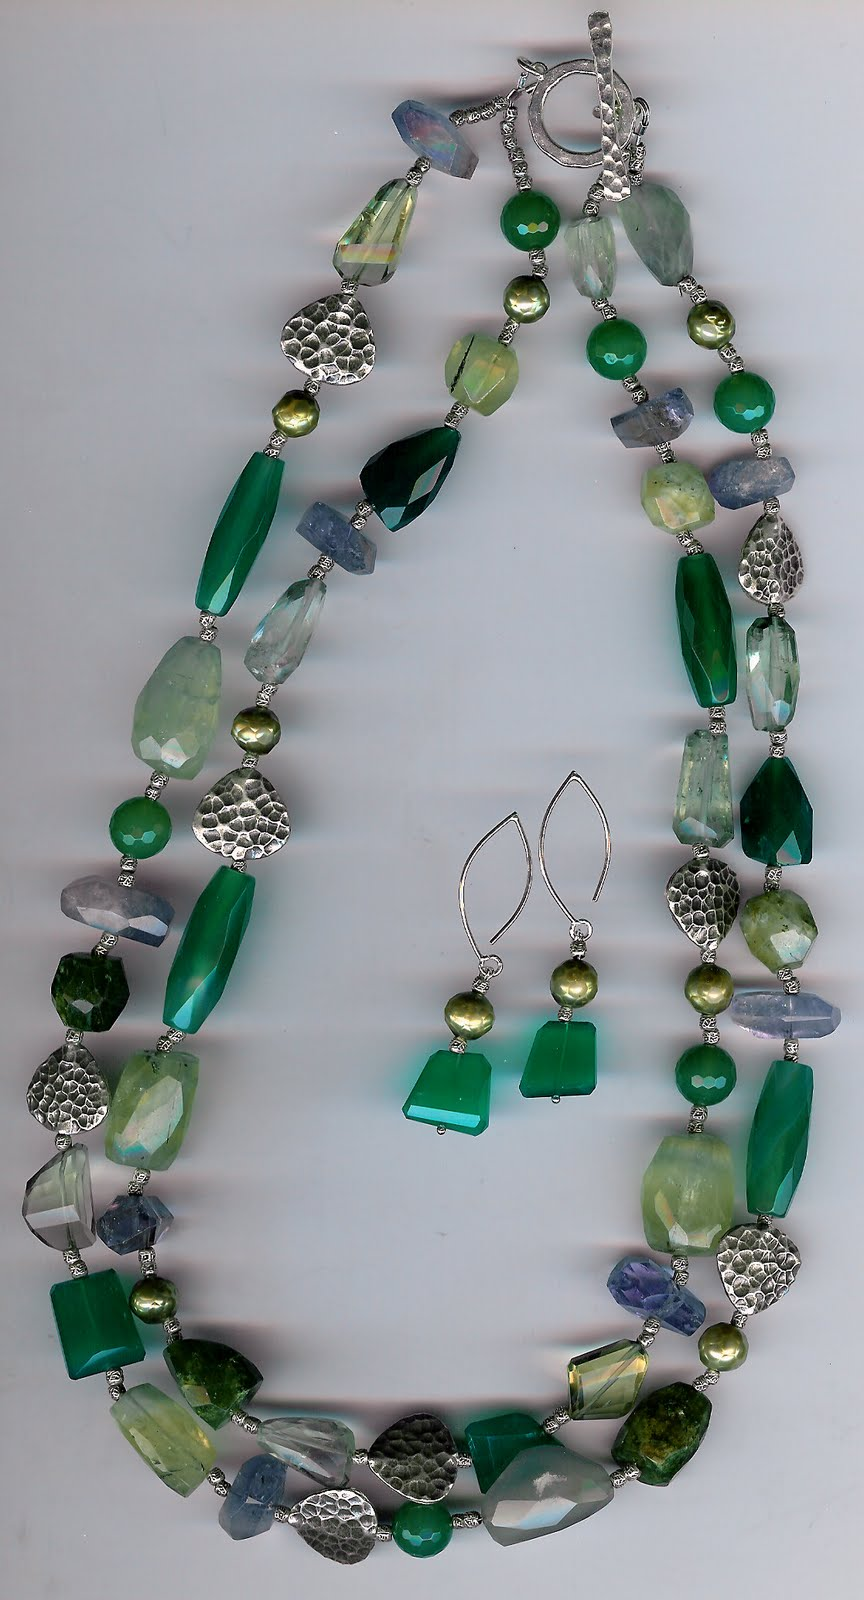 213. Jade, Lemon topaz, Prehnite, Pearls, Agate and Karen Hill Thai Sterling Silver + Earrings